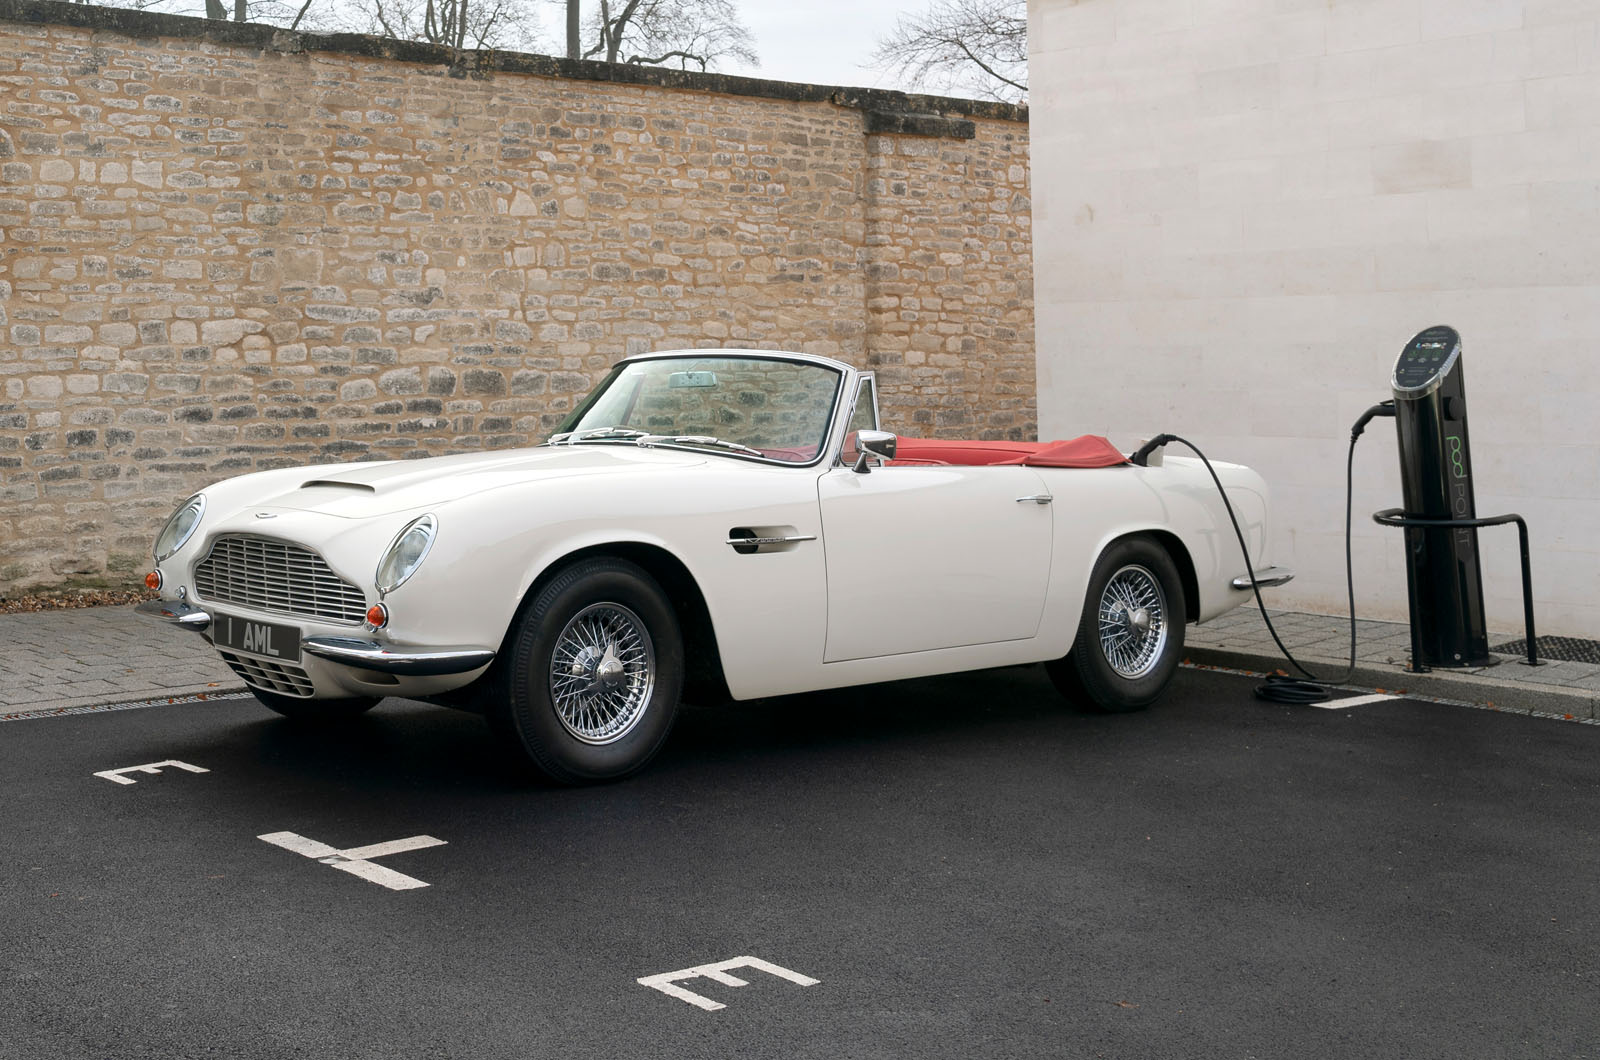 Aston Martin Offers Reversible Electric Conversion For Classic Cars Autocar